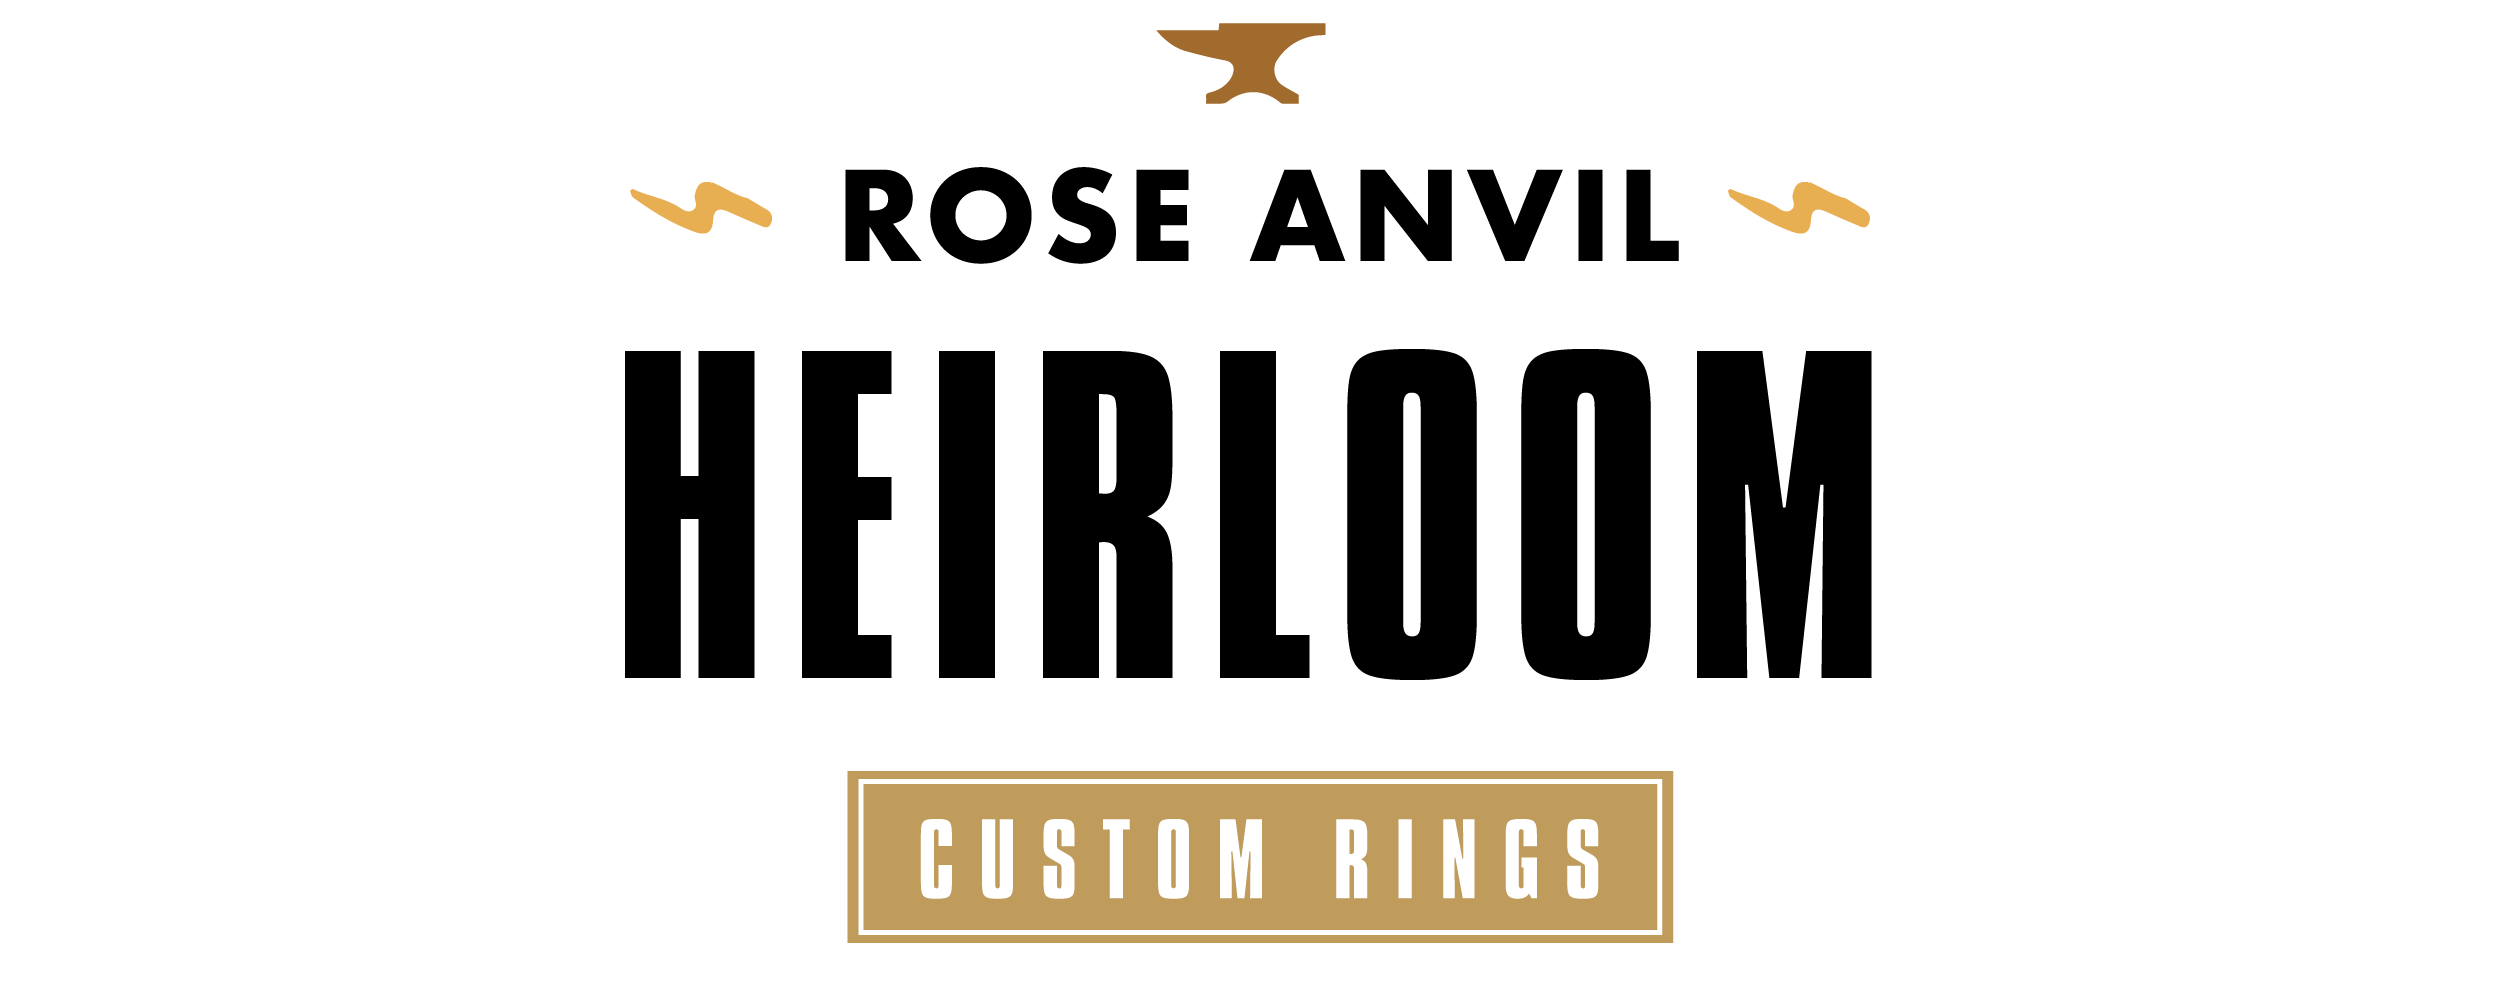 $300 Heirloom Custom Ring